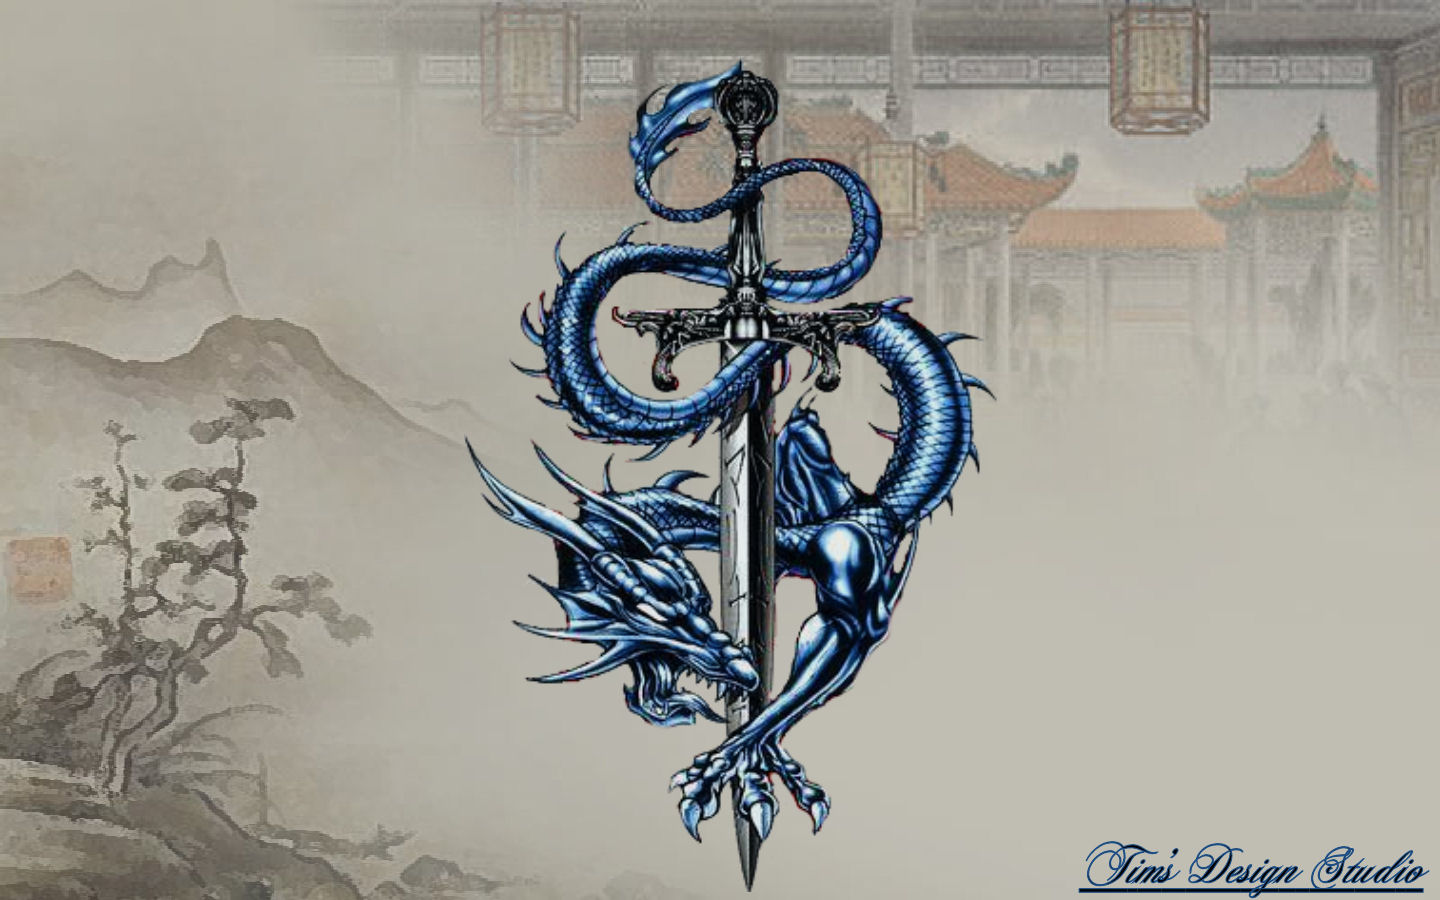 year of the dragon image - id: 11086 - image abyss